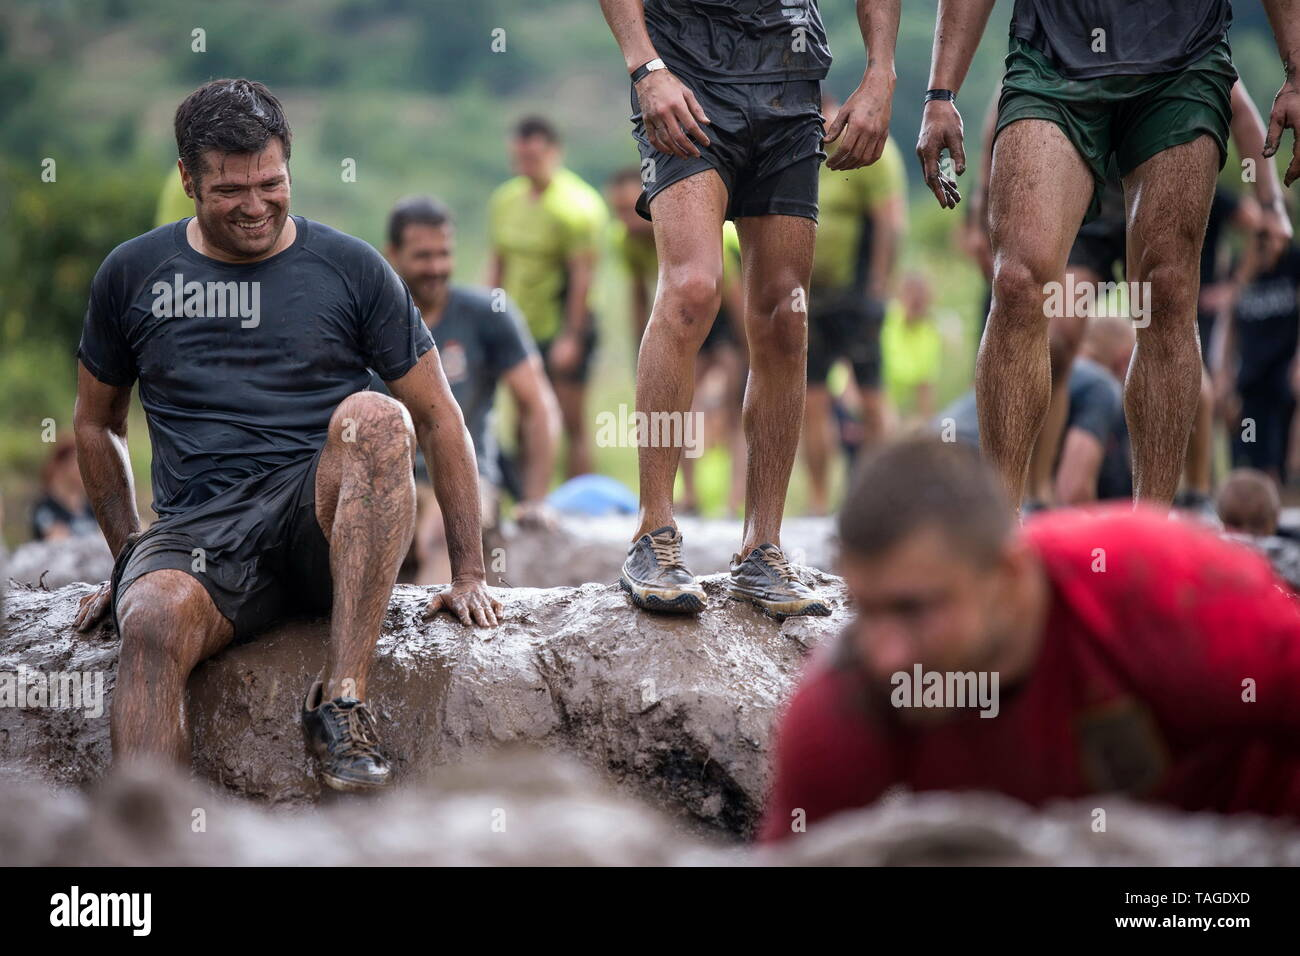 SOFIA, BULGARIA - JULY 7th 2018 - a smiling man is having fun covered with mud and trying to overcome the obstacle course in a strength race - Stock Image